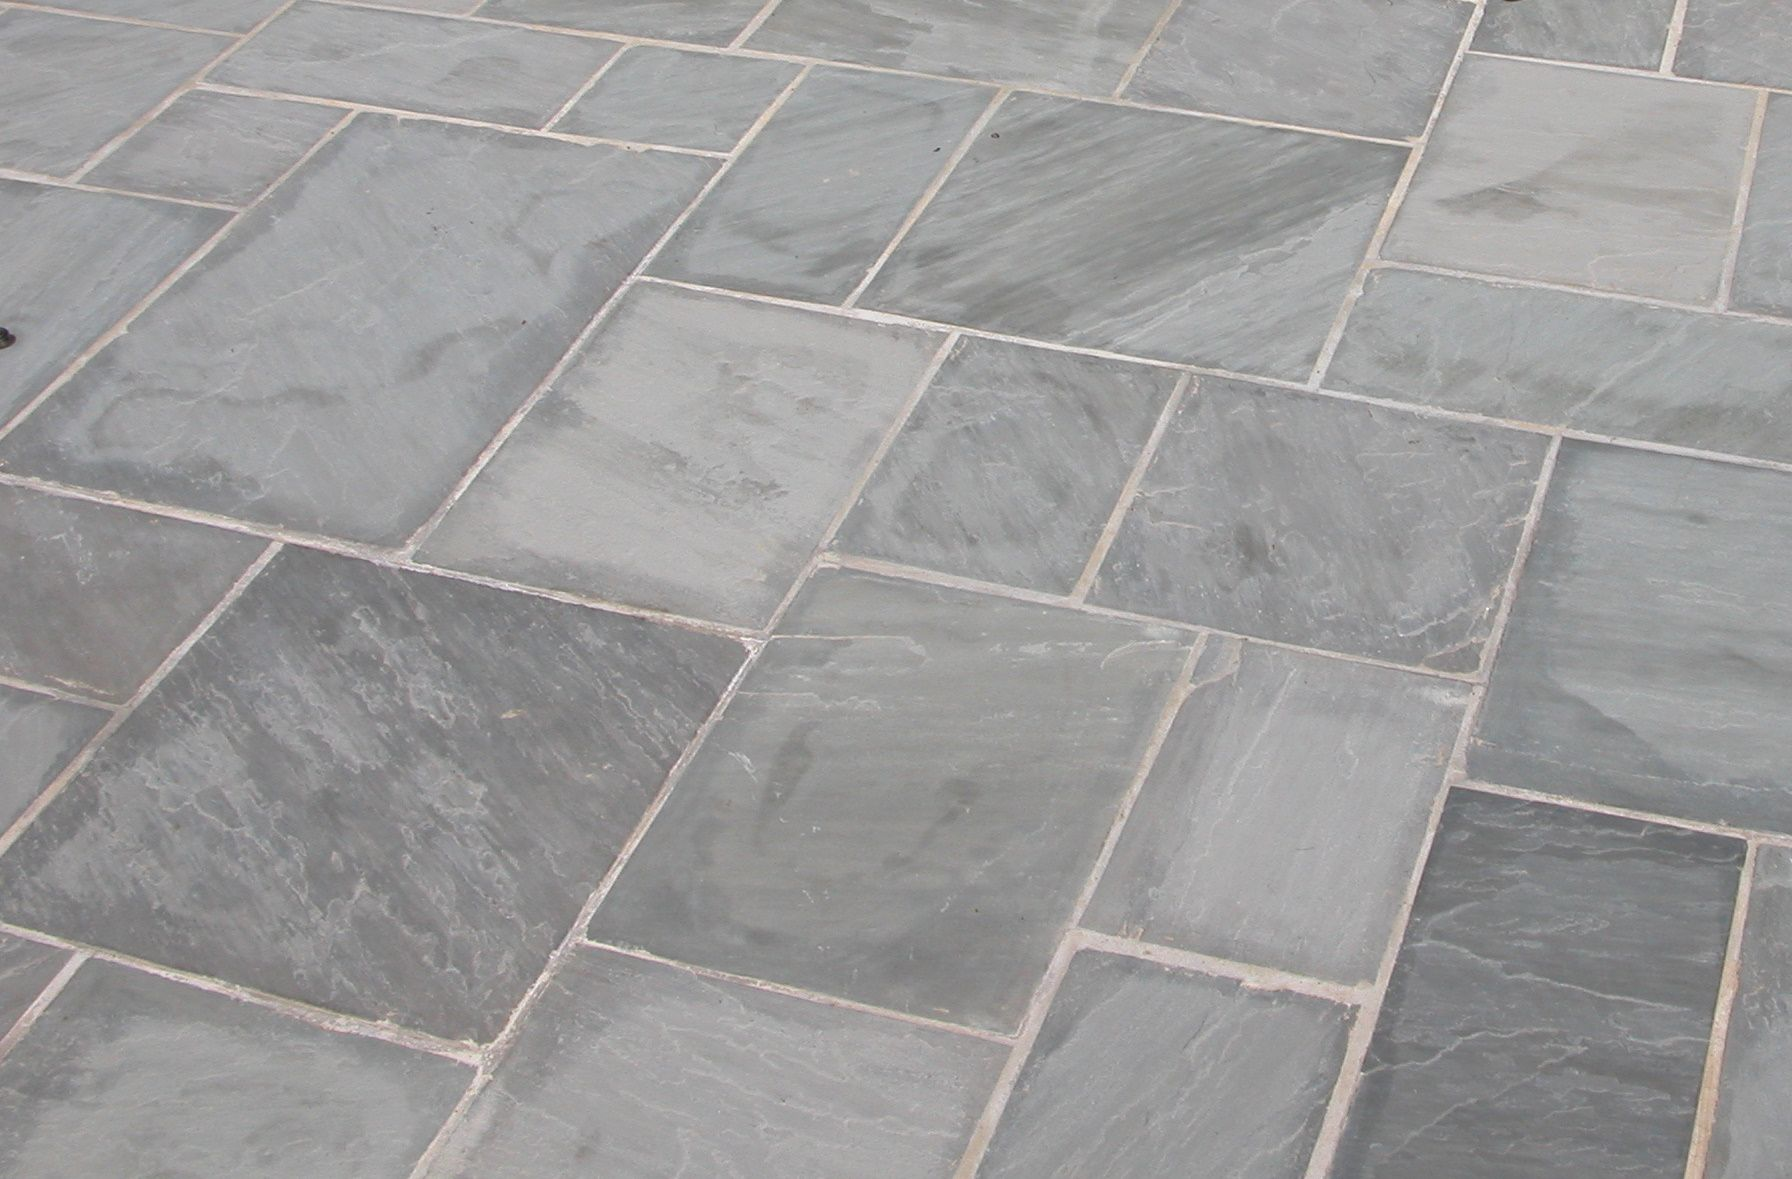 Pin By Nicole Dunn On Floors Sandstone Paving Slabs Sandstone Paving Patio Stones